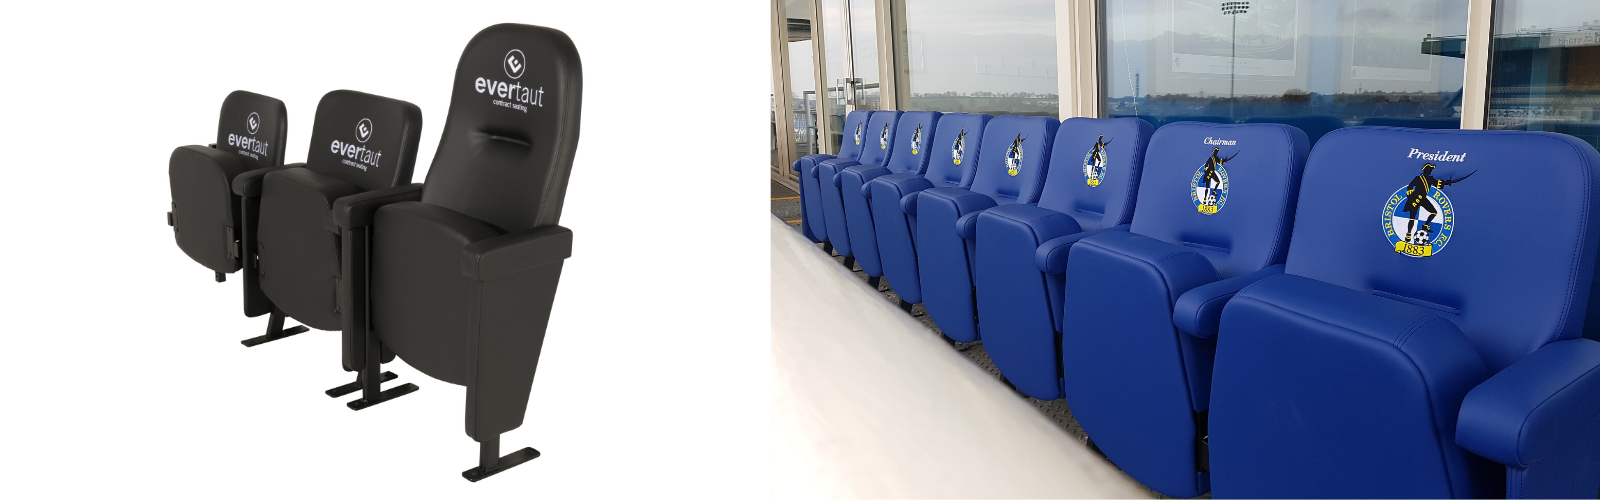 Embroidered club branding on Evertaut's range of premium stadium seating alongside an installation at Bristol Rovers FC with club branding on seat backs